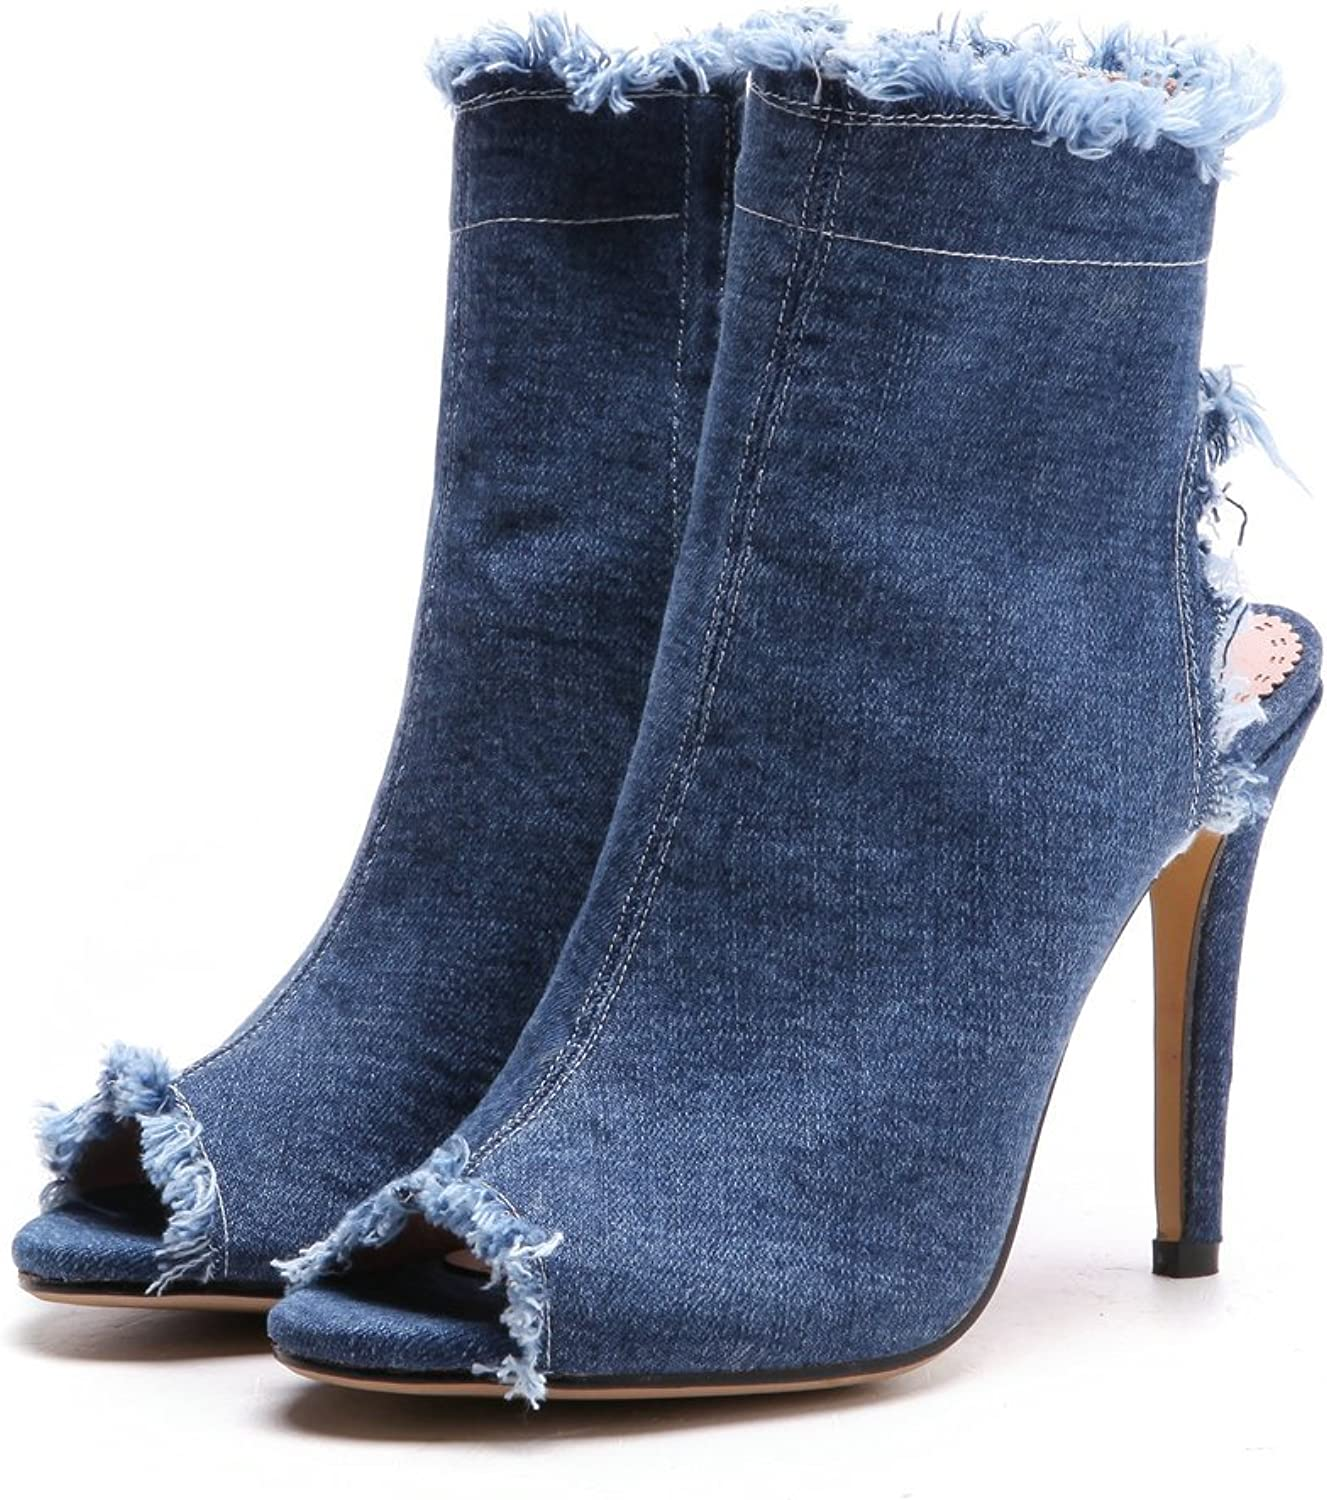 An Meng Xin Ling Fashion Sandals Boots Denim High Heel bluee Peep Toe Ankle Boots Sexy Dress Stilettos Spring Summer shoes Plus Size